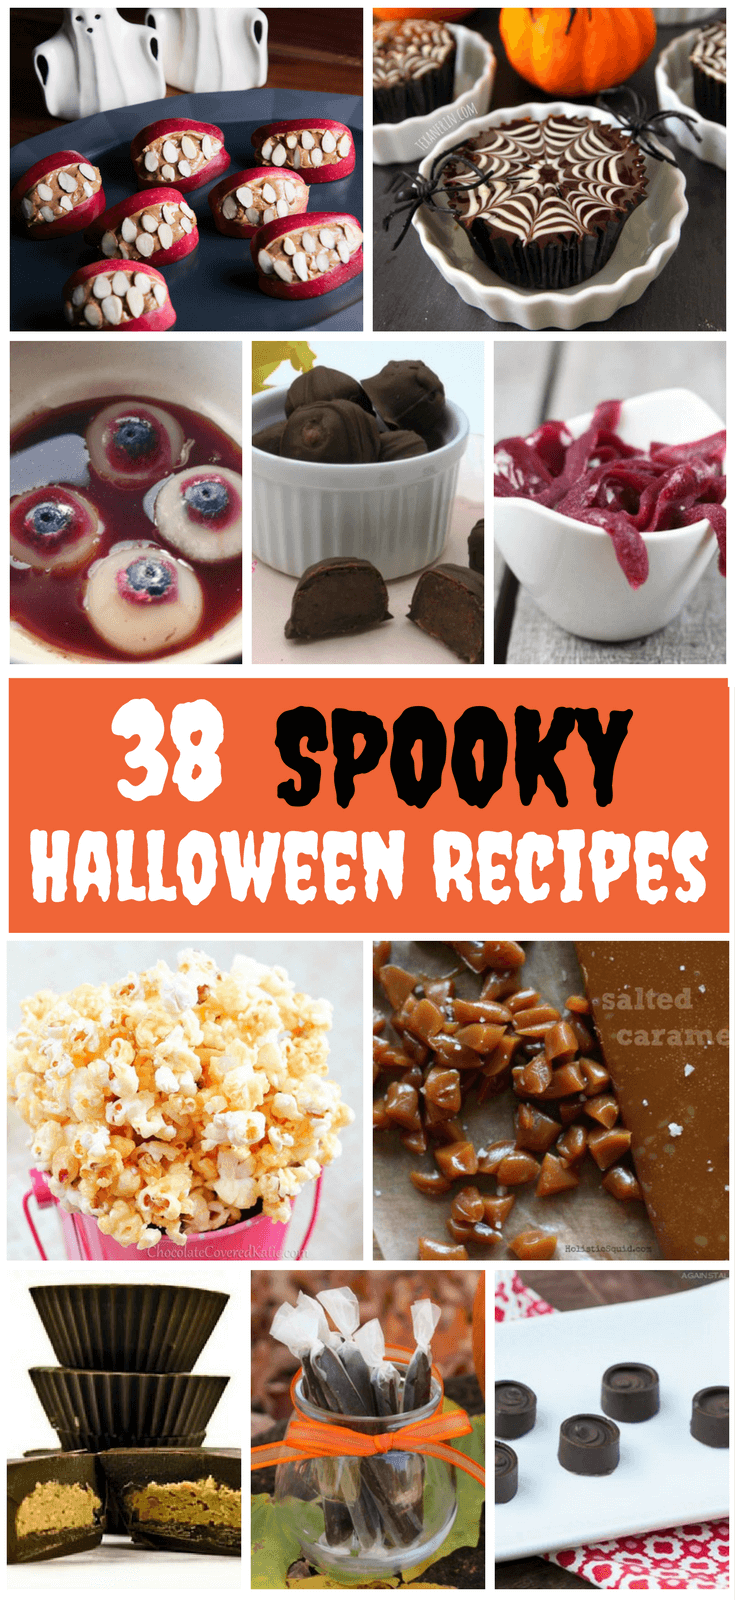 Looking for Spooky Halloween Treats? These Yummy Homemade Halloween Treats are sure to be a hit! From gooey gelatin eyeballs to monster teeth, these creepy treats are sure to be a hit